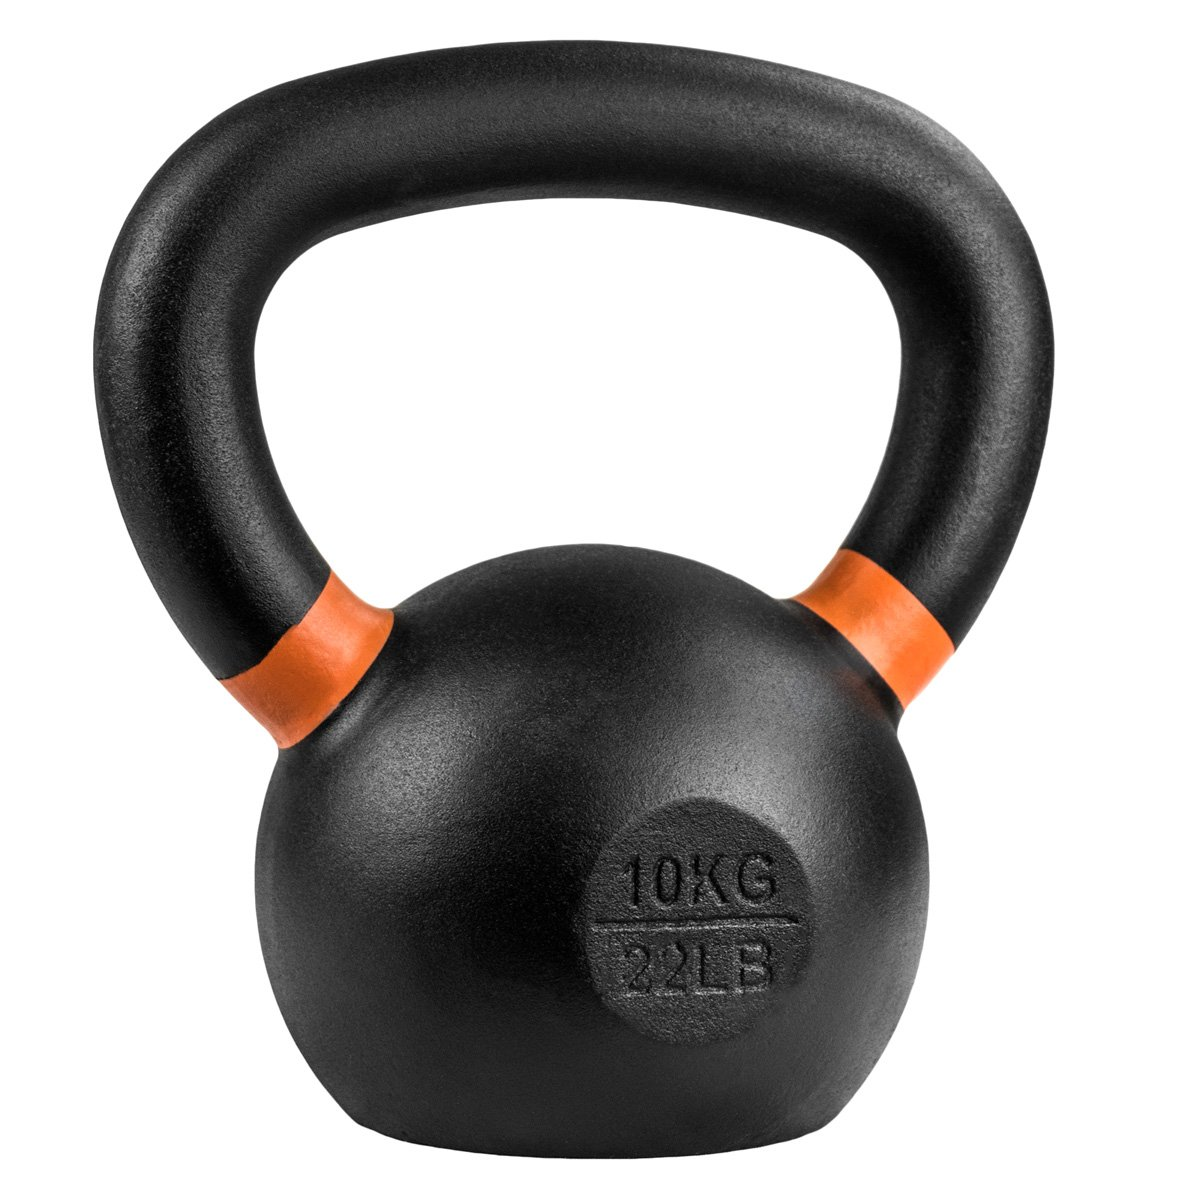 Rep 10 kg Kettlebell for Strength and Conditioning